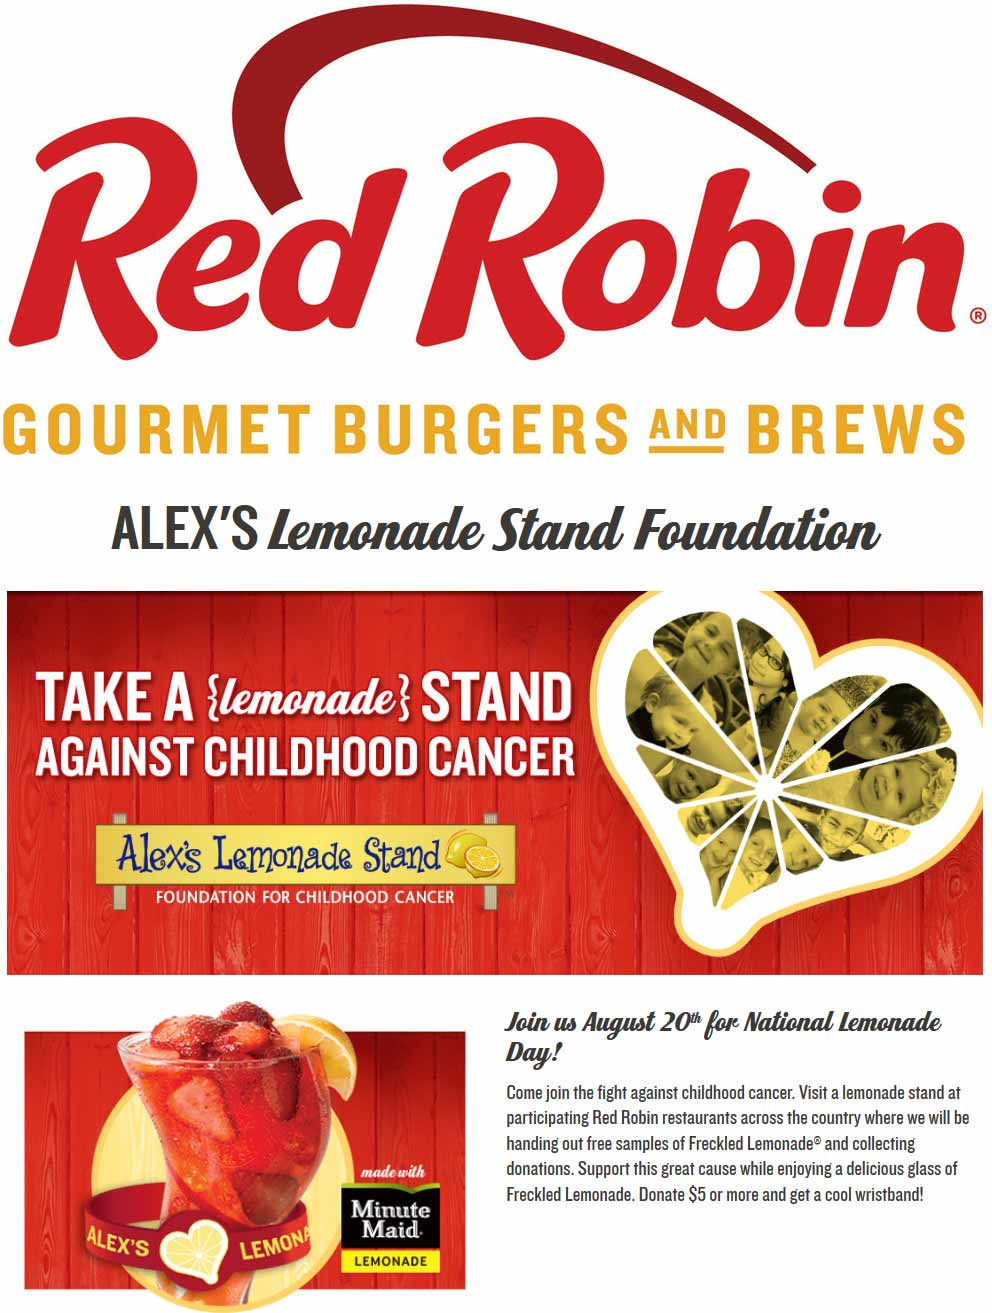 Red Robin Coupon May 2017 Free lemonade for charity Saturday at Red Robin restaurants